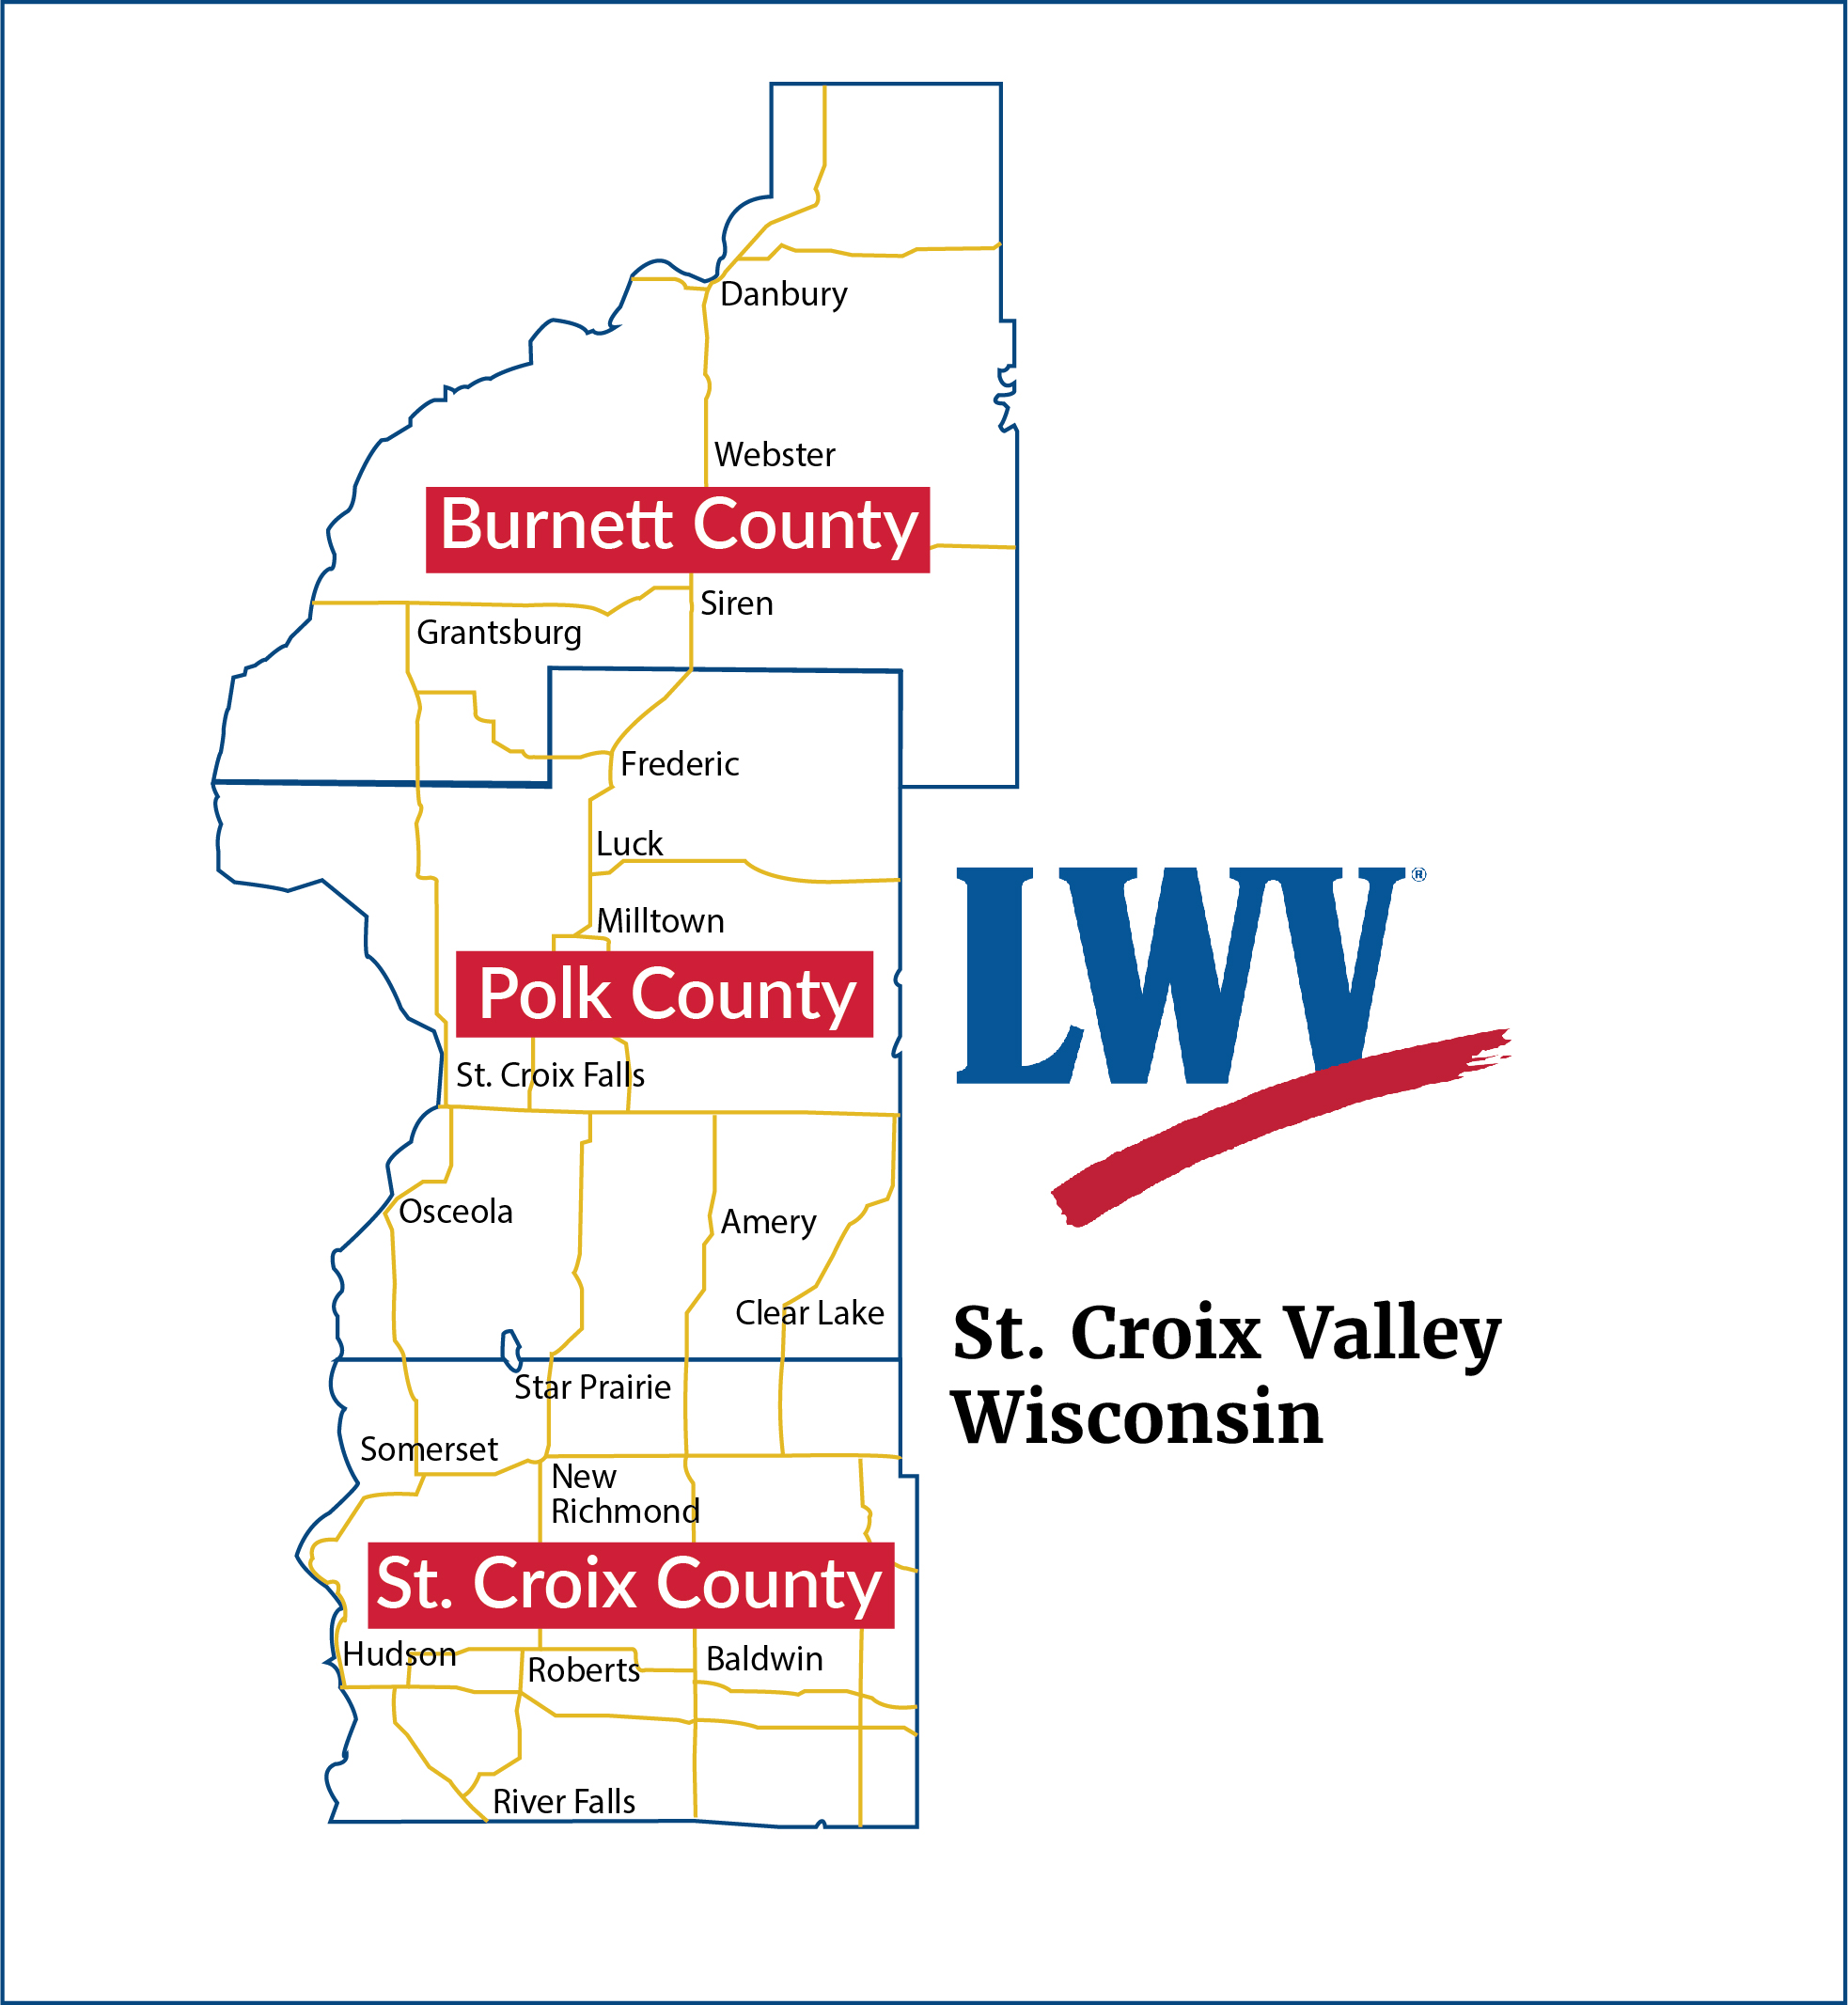 map of Burnett, Polk, and St. Croix counties in Wisconsin